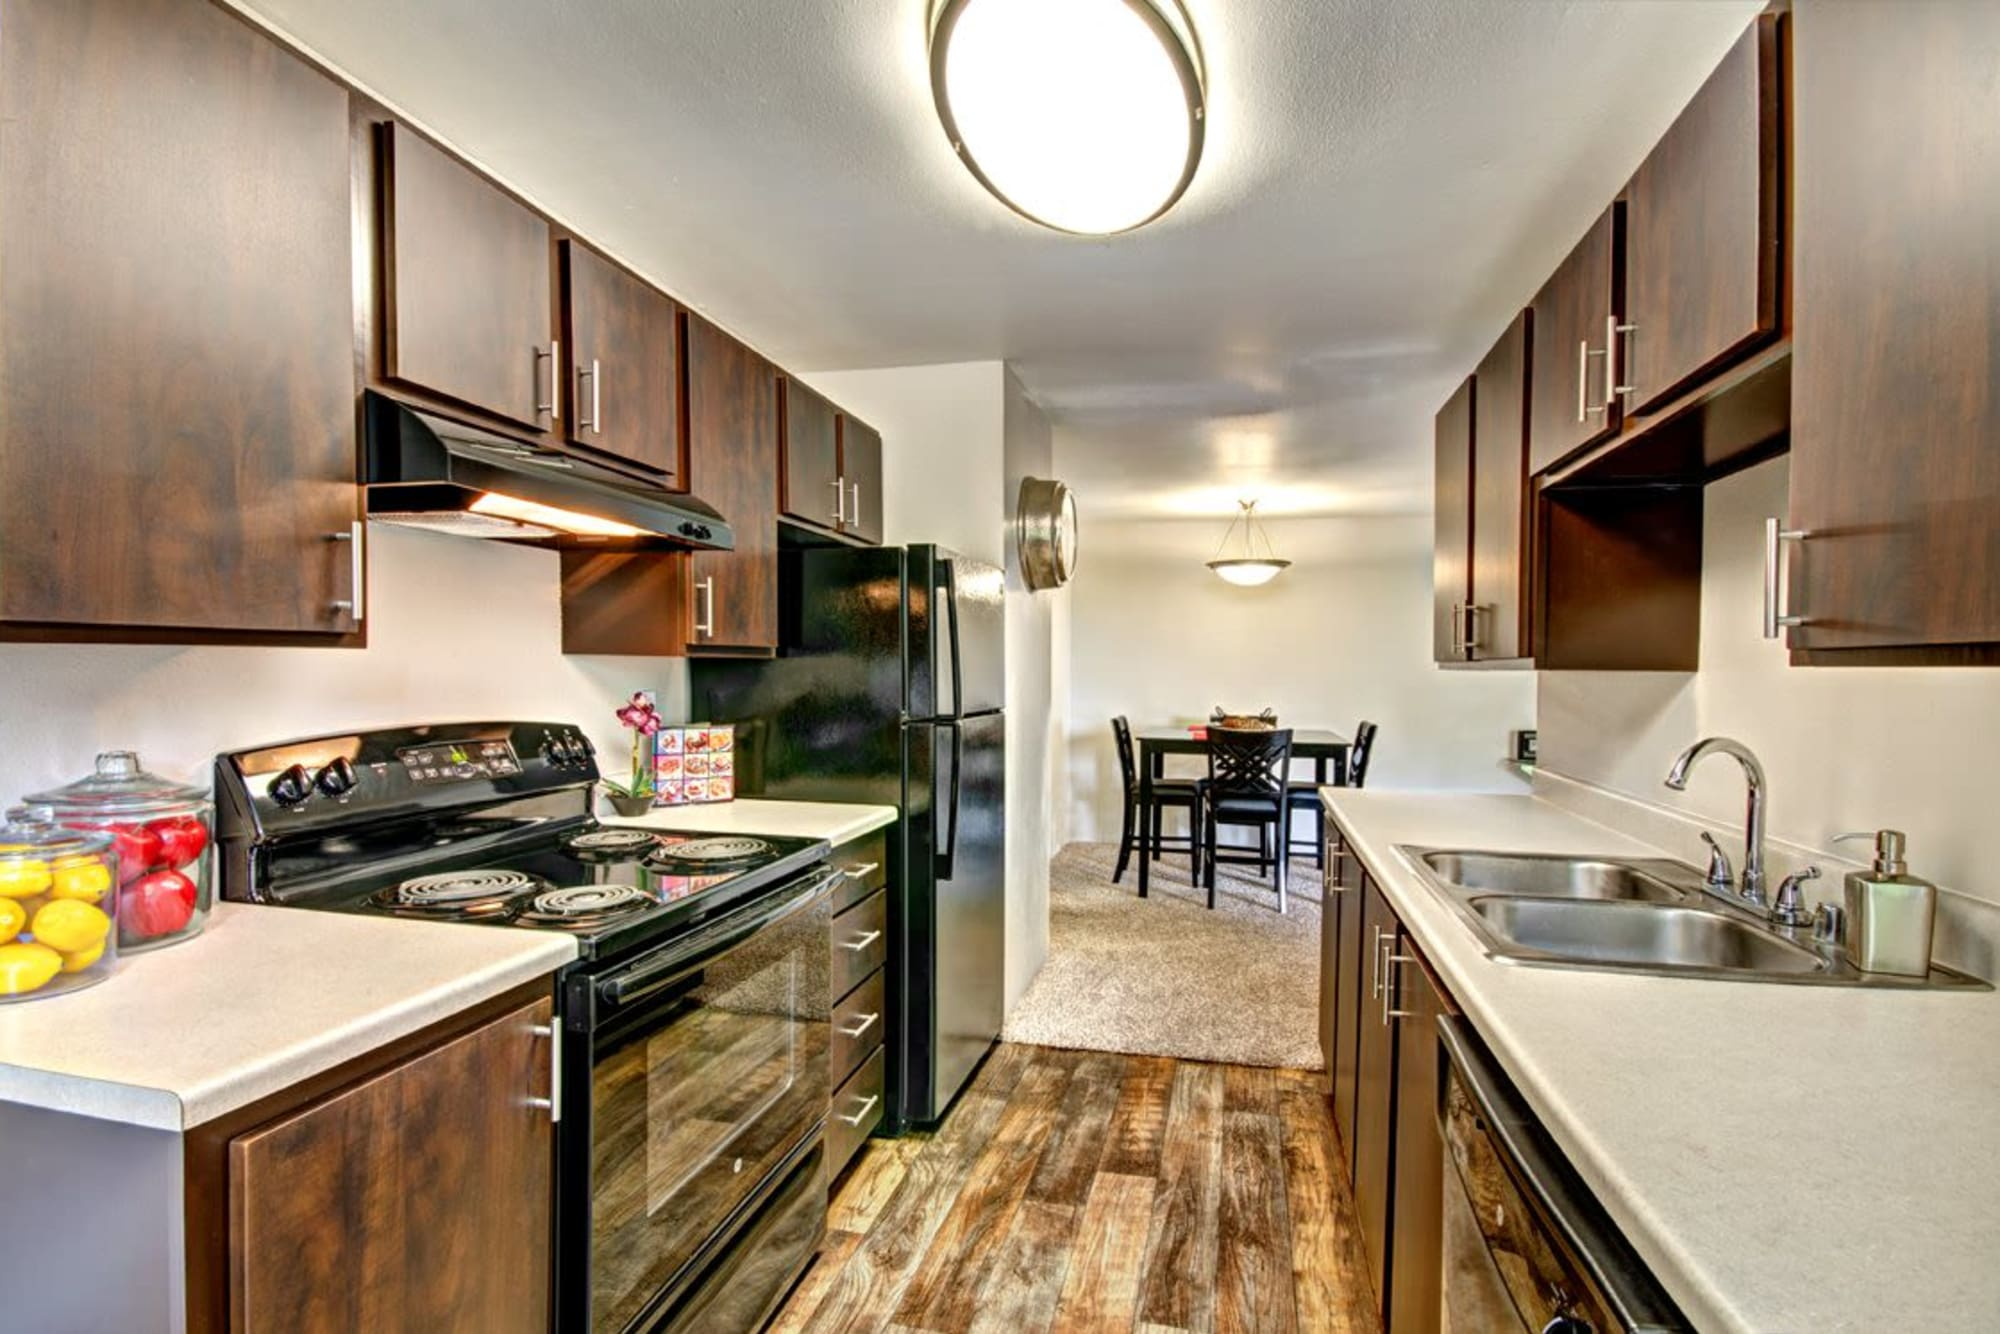 Hardwood-style floors in kitchens at Wellington Apartment Homes in Silverdale, Washington